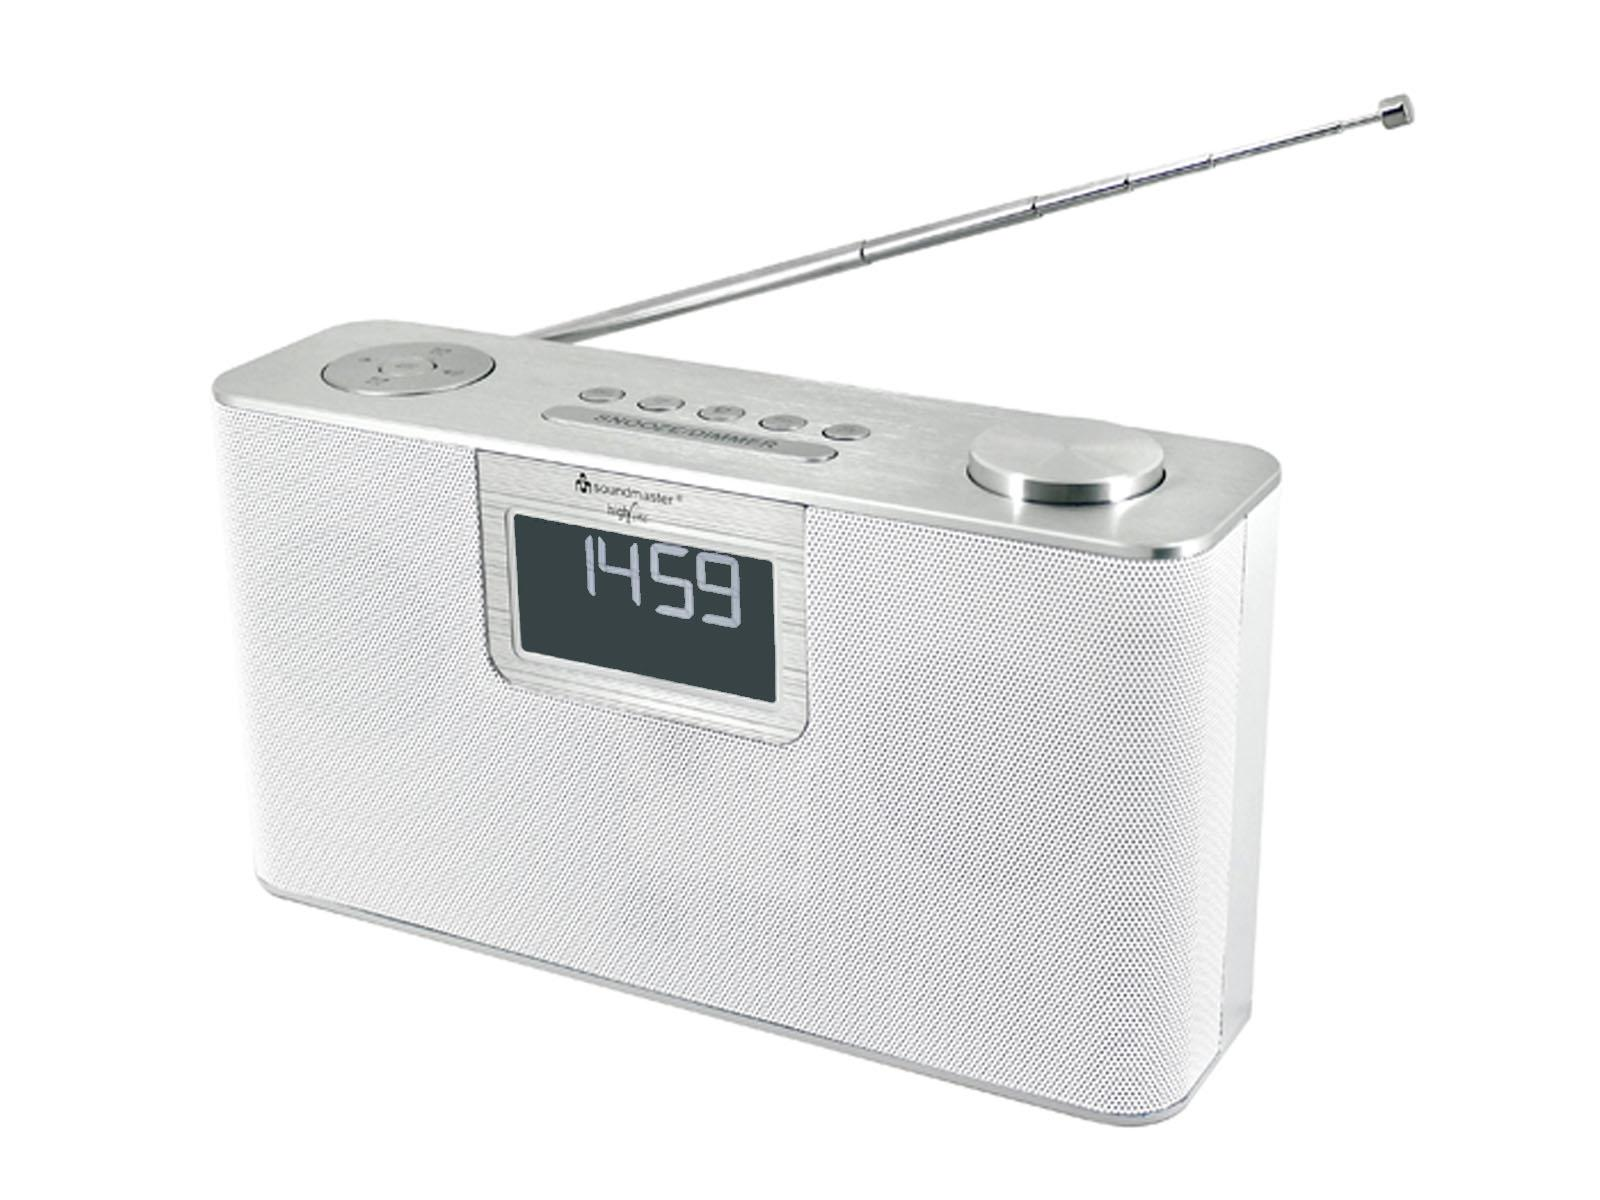 soundmaster DAB700WE Portable FM / DAB Radio with Bluetooth